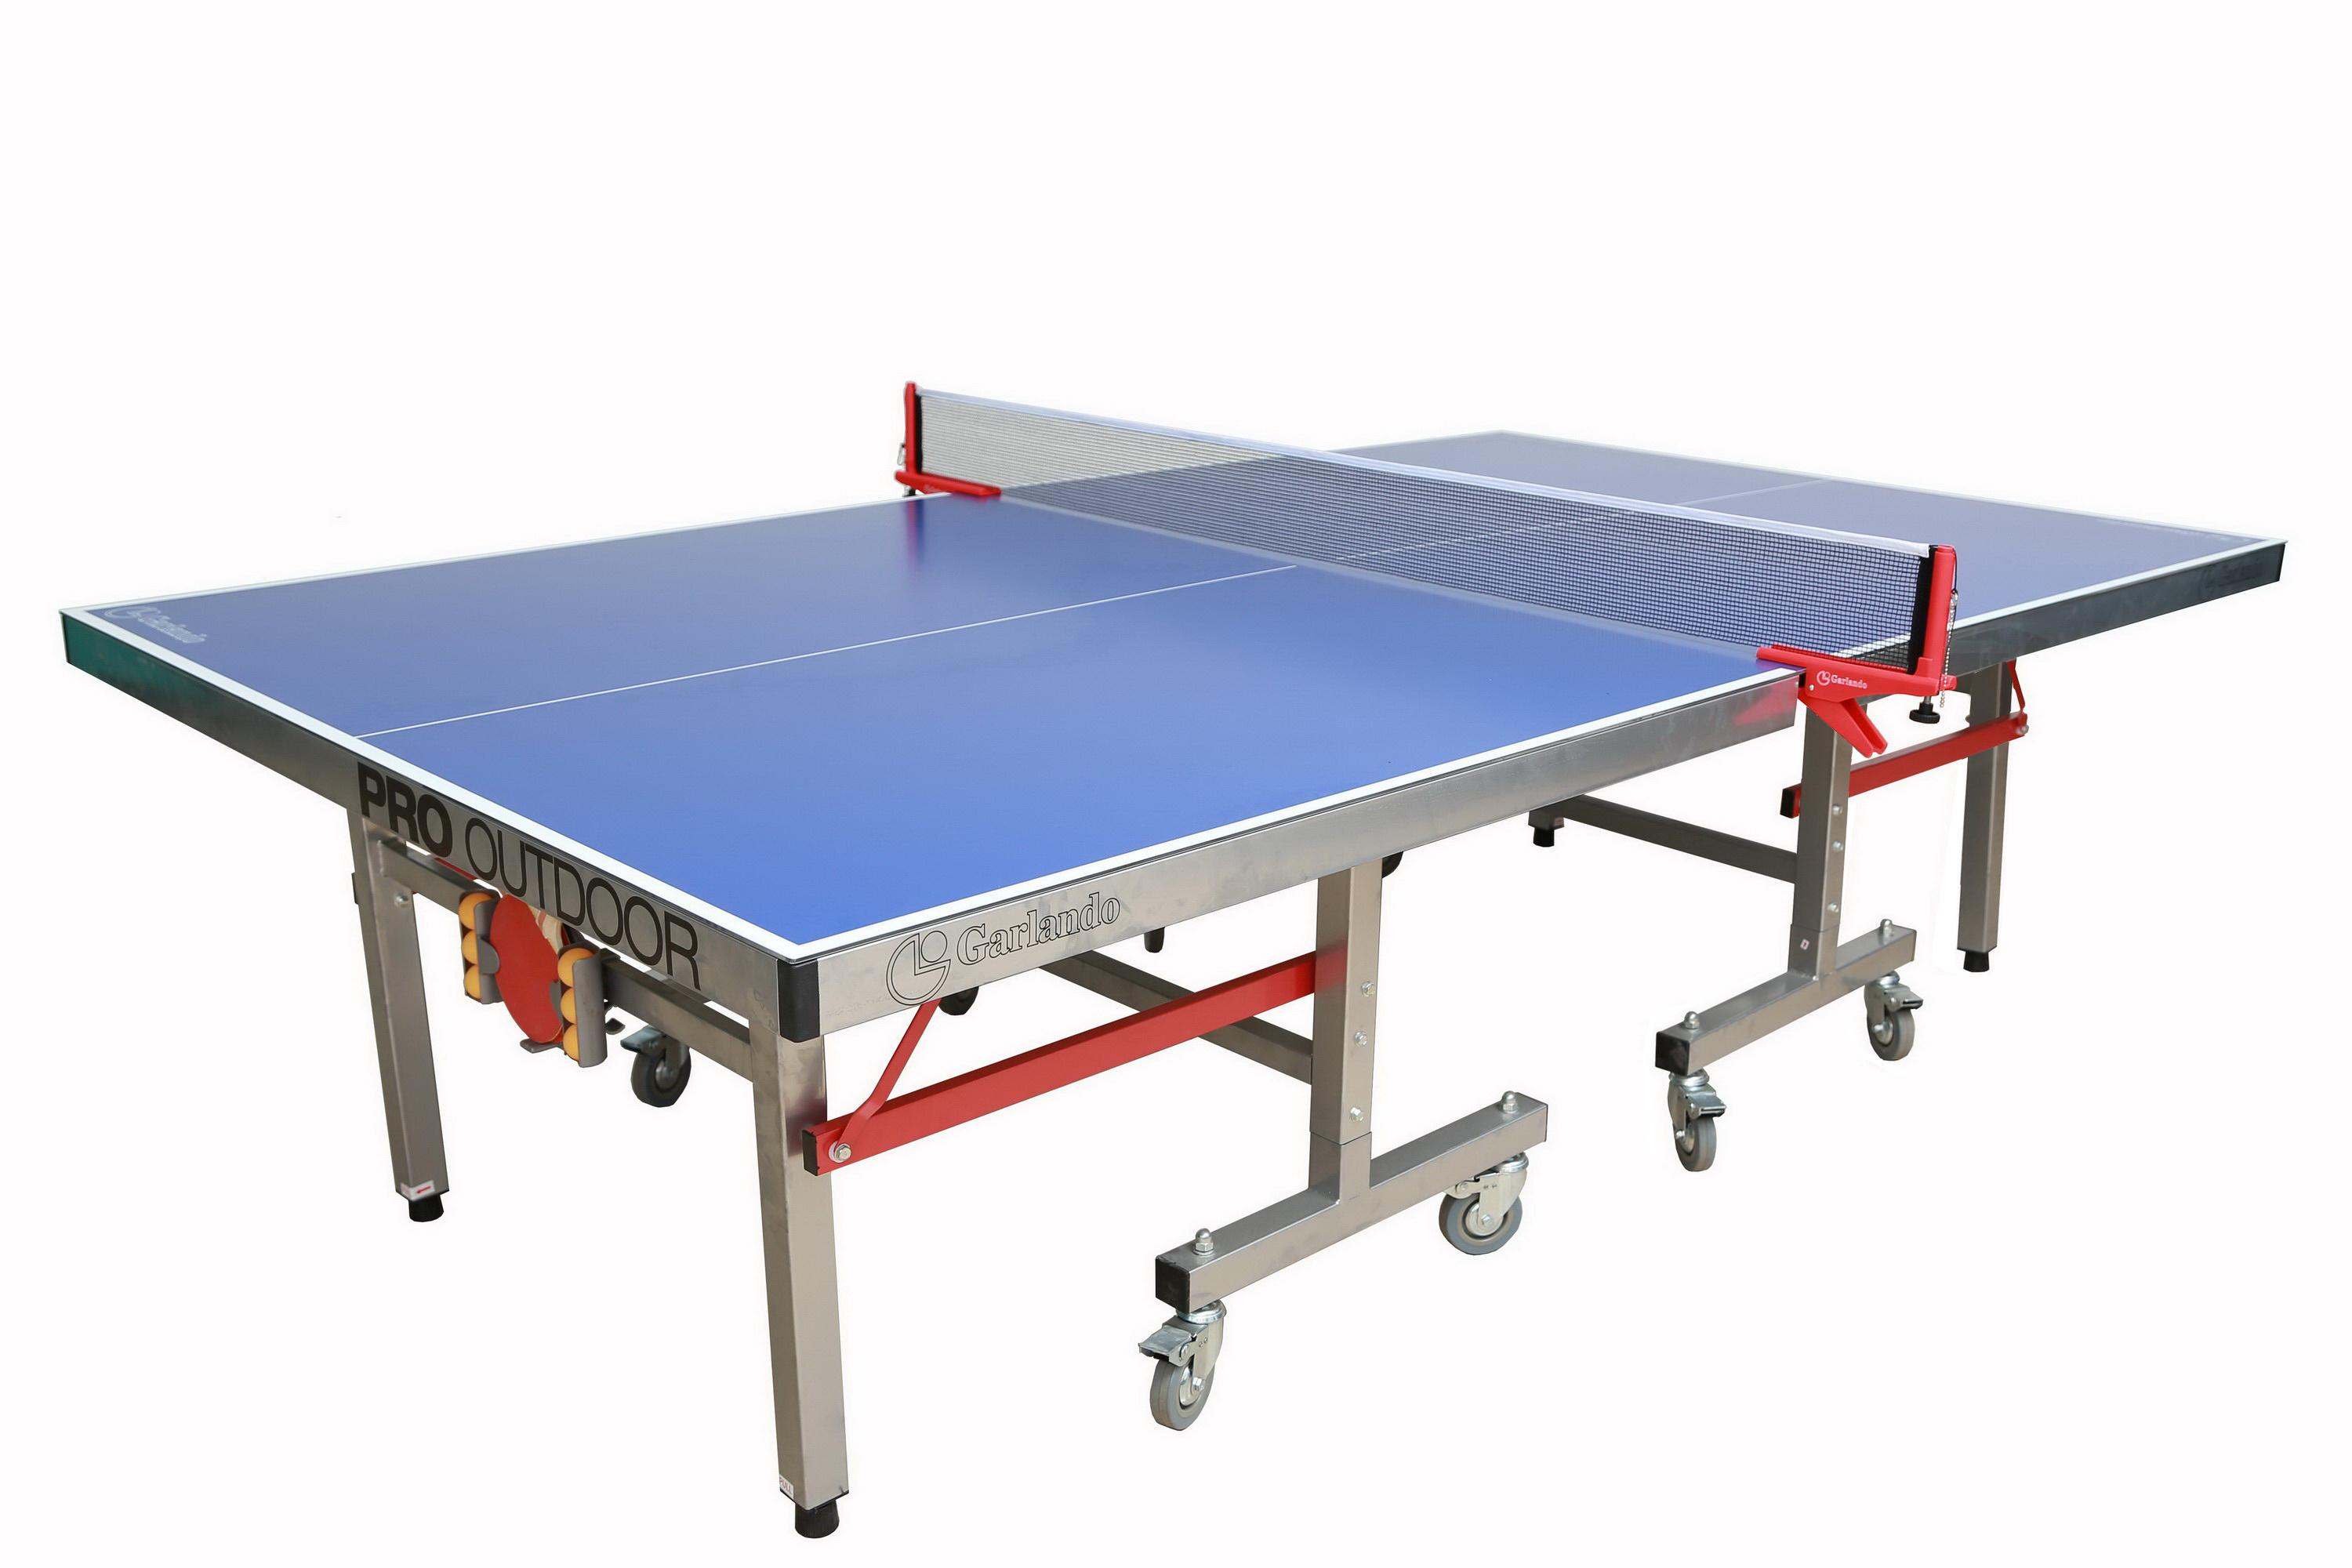 garlando pro indoor outdoor table tennis table blue top sports outdoors. Black Bedroom Furniture Sets. Home Design Ideas